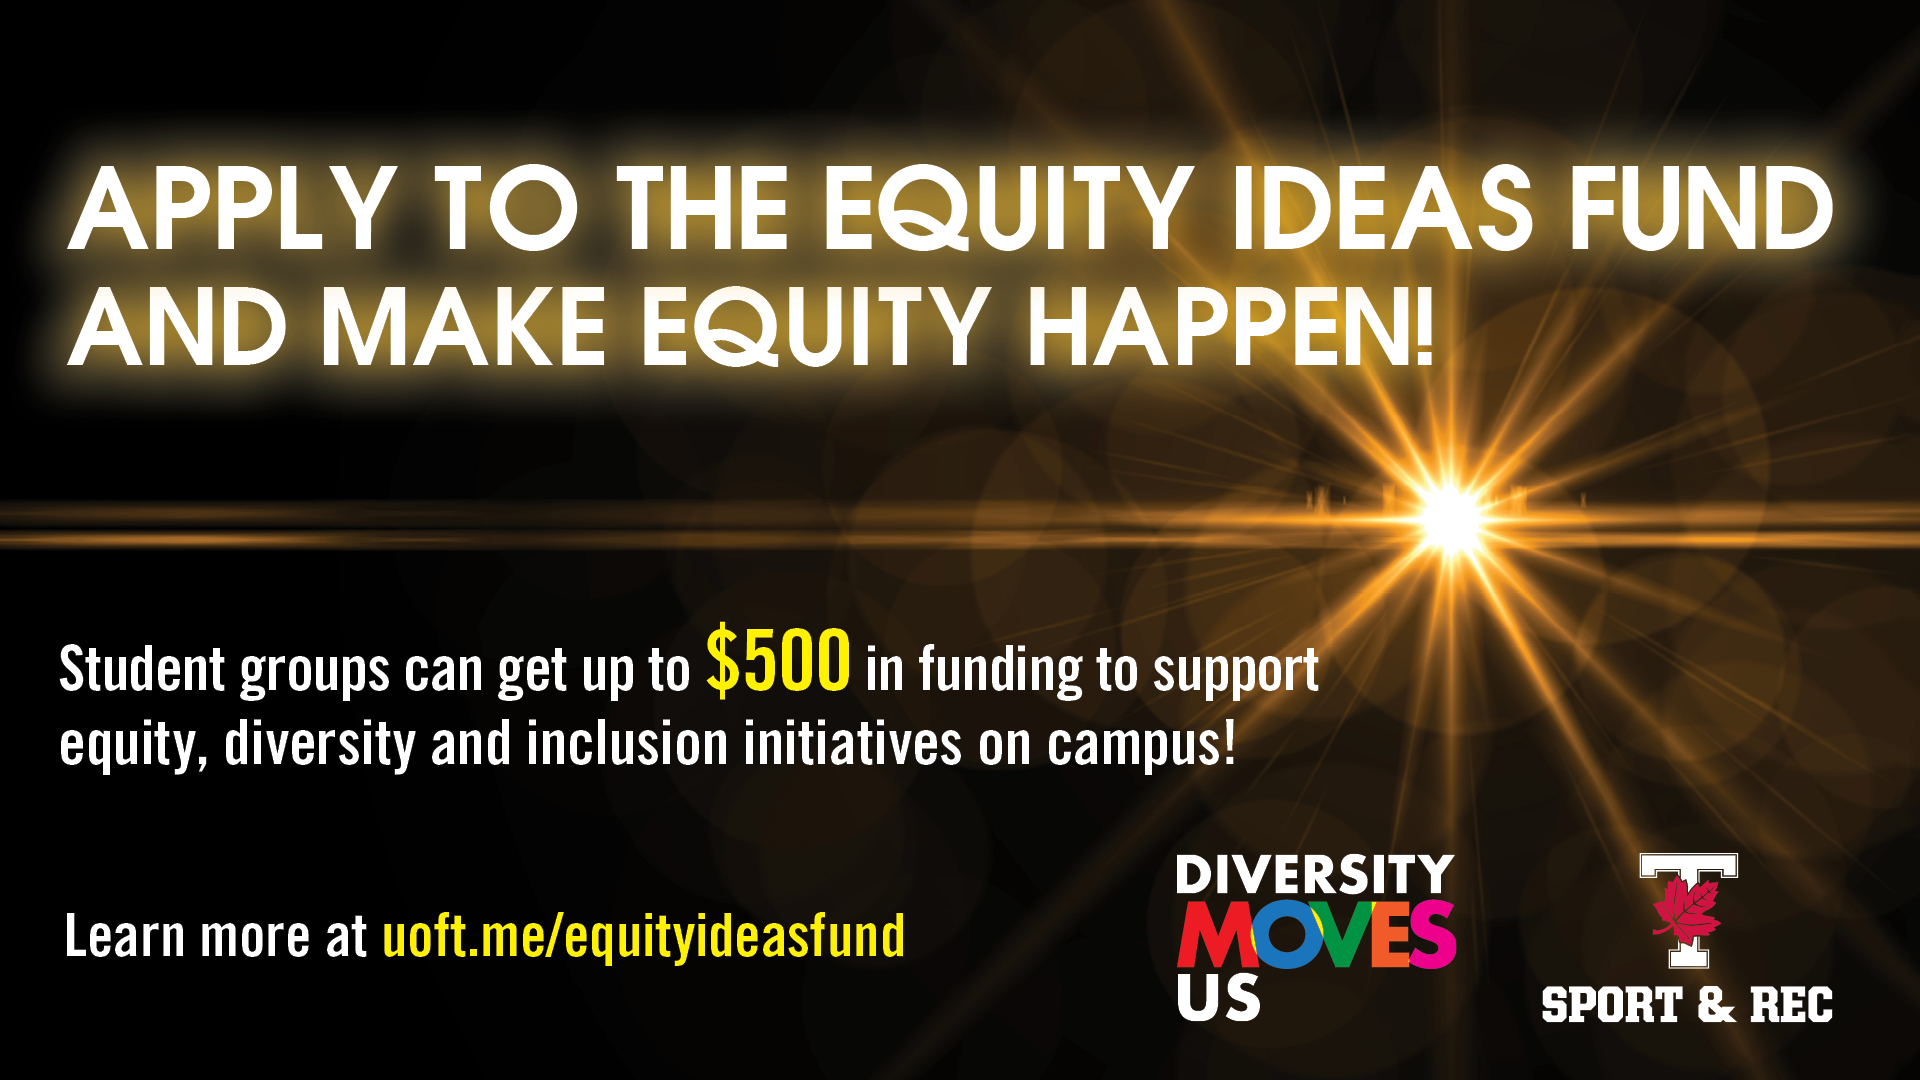 graphic with text: apply to the equity ideas fund and make equity happen